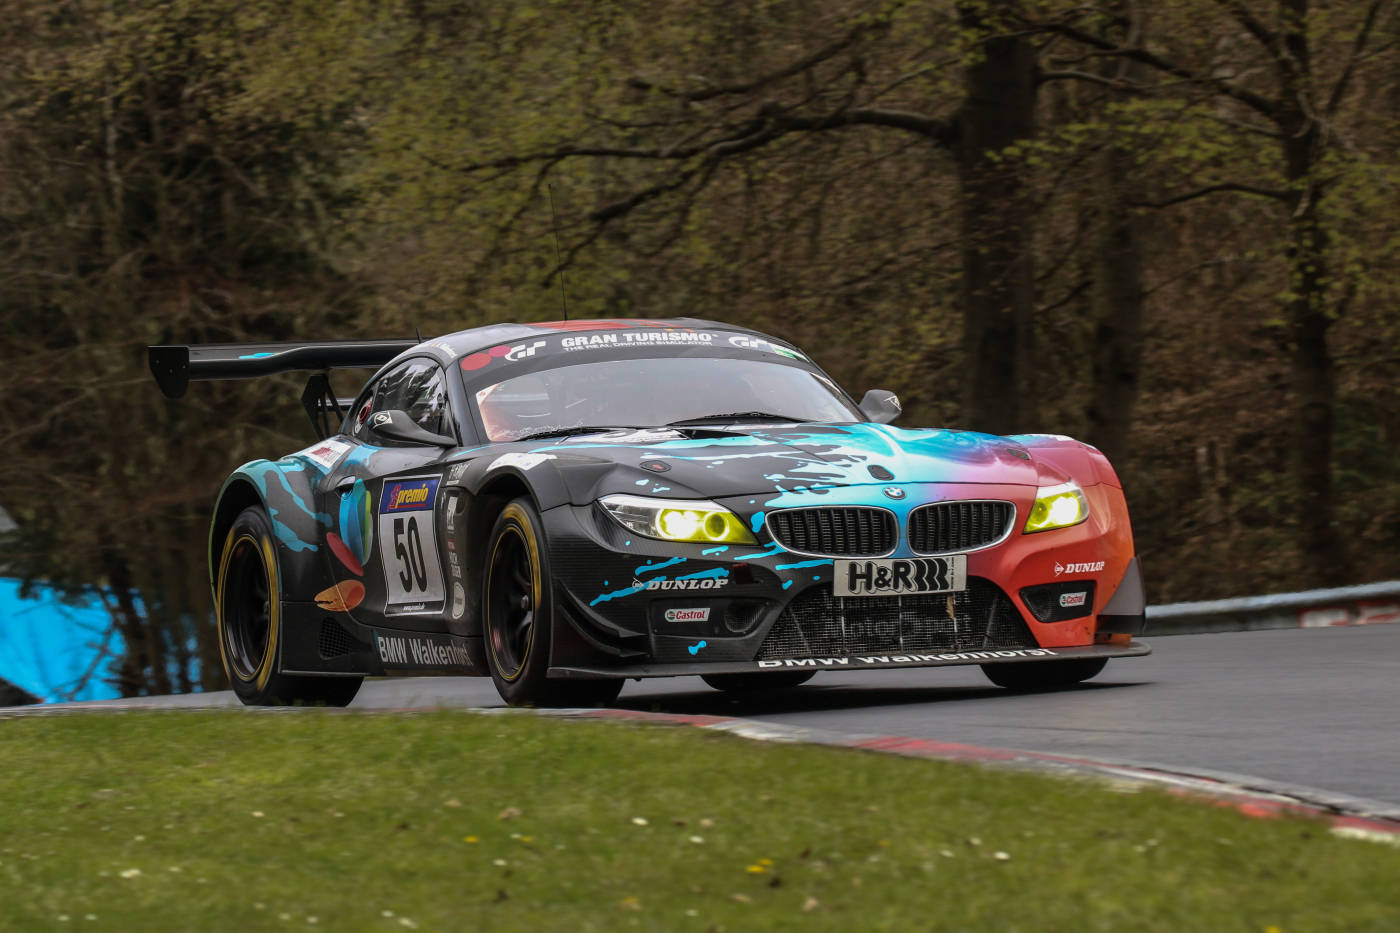 Bmw Z4 Gt3 Bimmertoday Gallery Bimmertoday Gallery